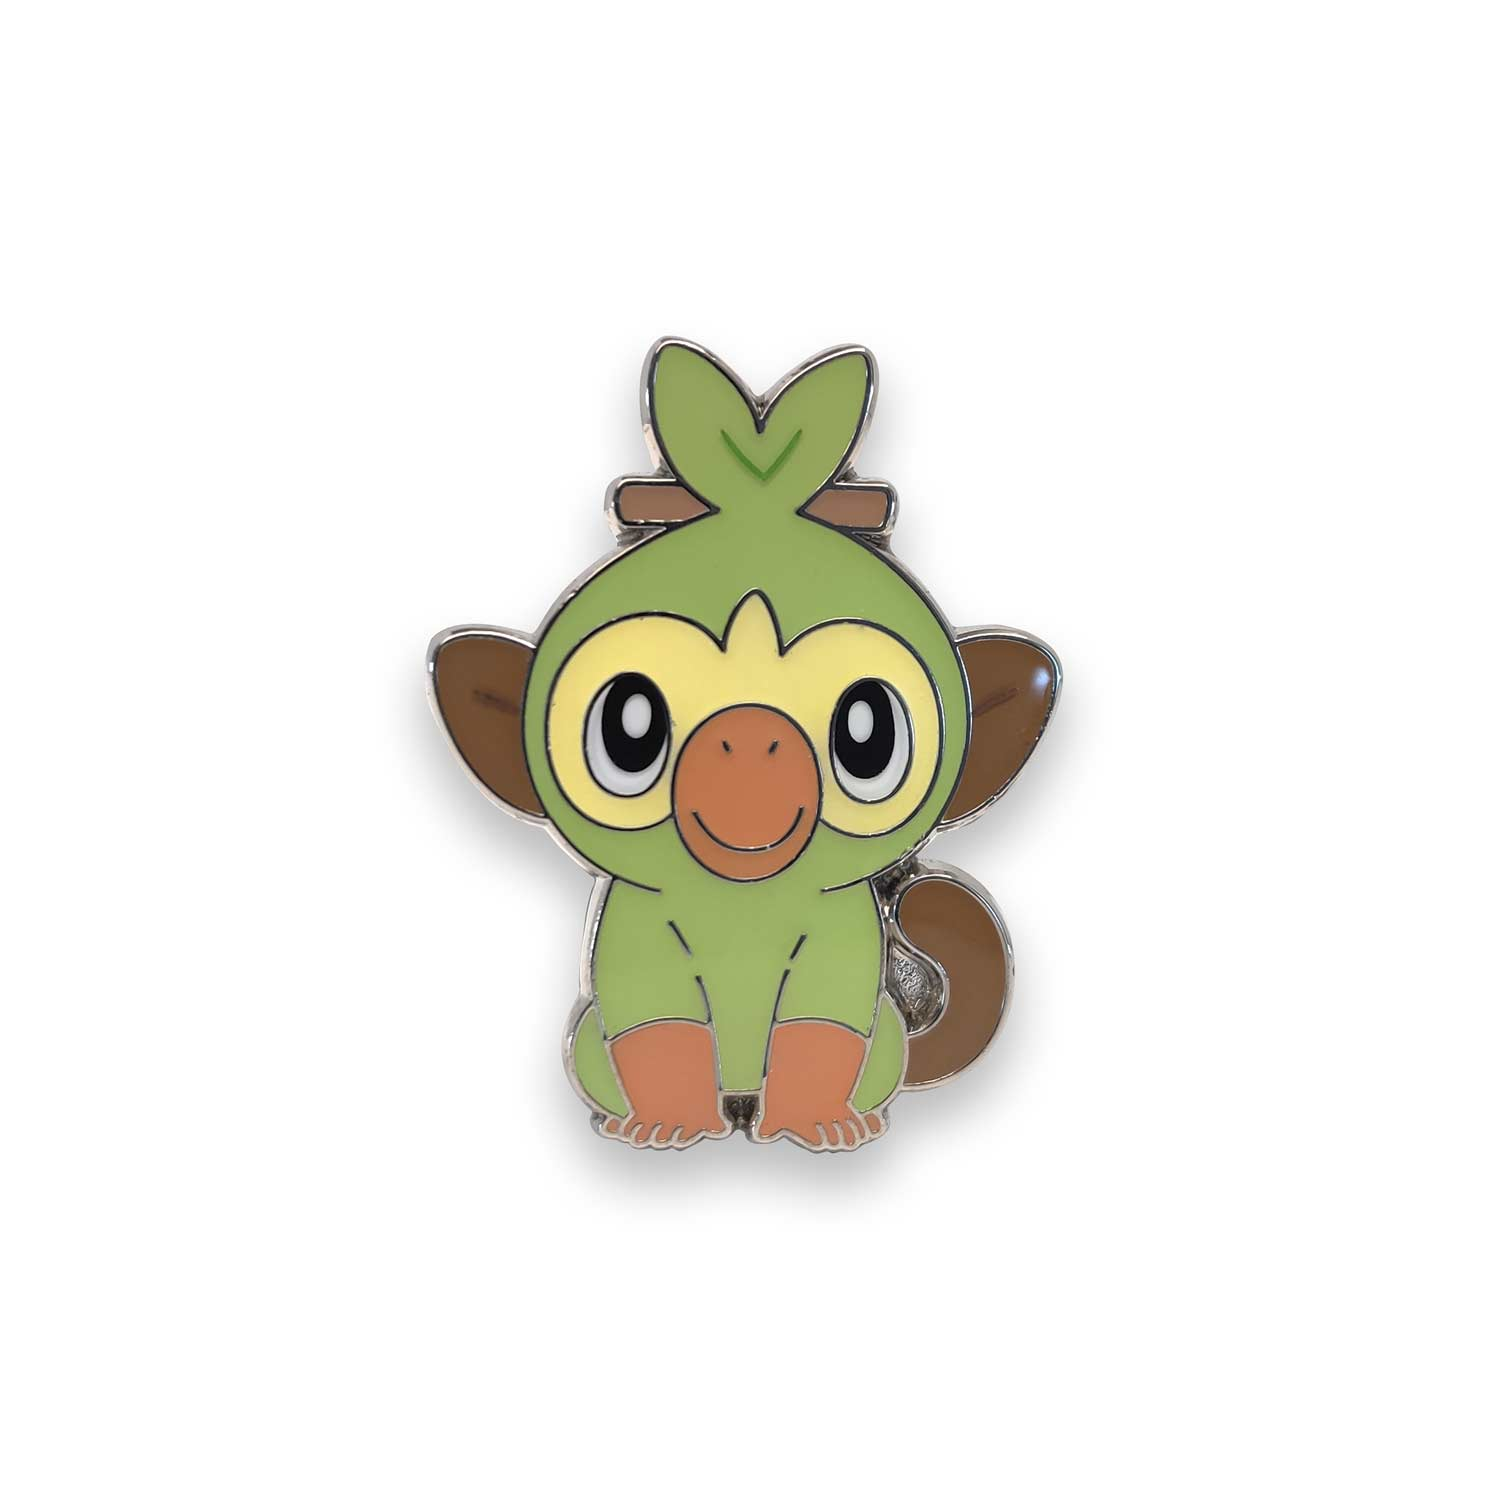 Pokemon Tcg Galar Collection Grookey Zacian Pokemon Center Official Site Grookey from pokémon is a gremlin! pokemon tcg galar collection grookey zacian